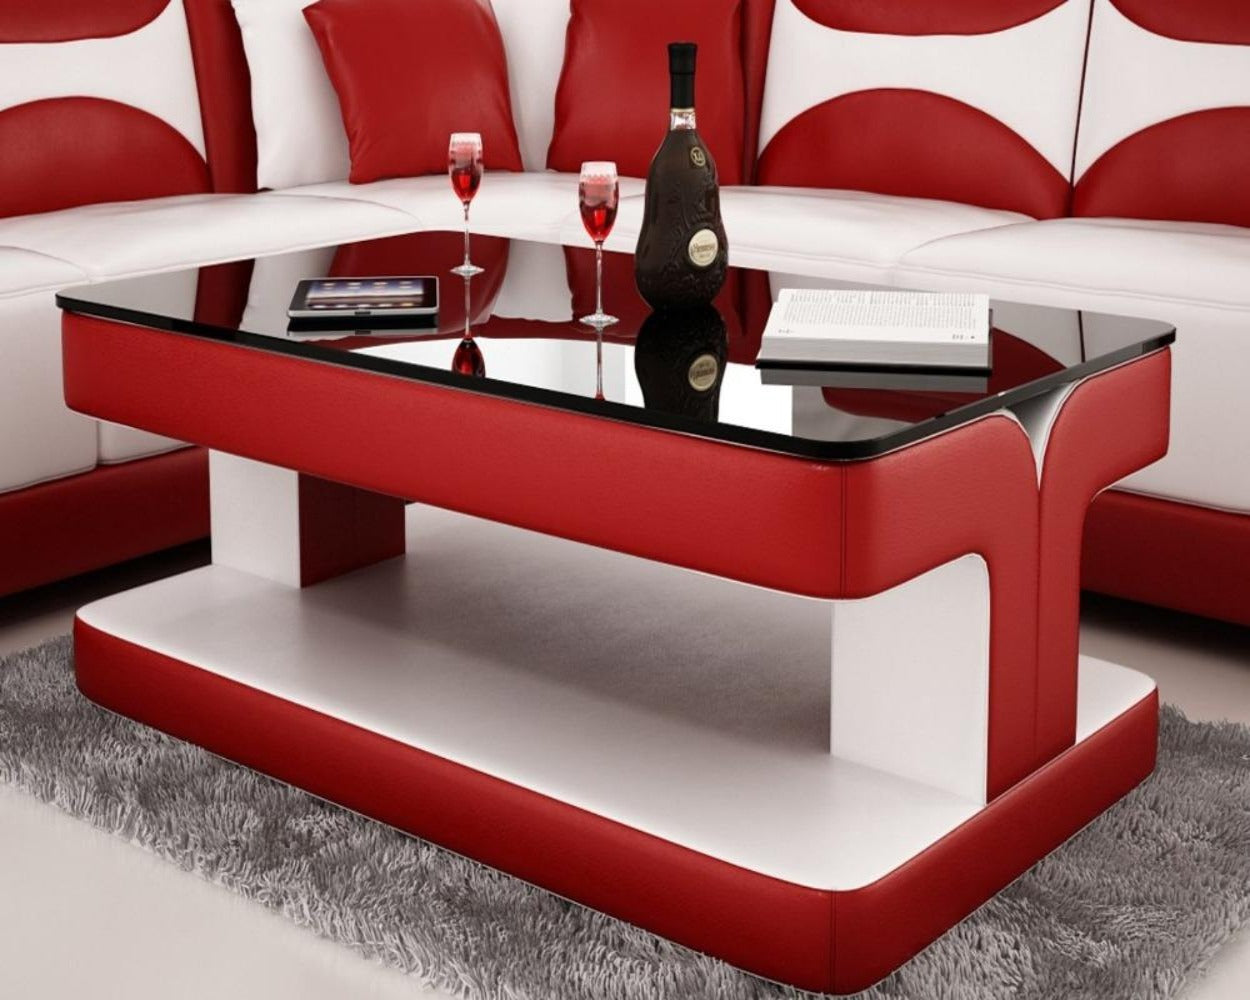 Attirant Contemporary Red Leather Coffee Table W/Black Glass Table Top